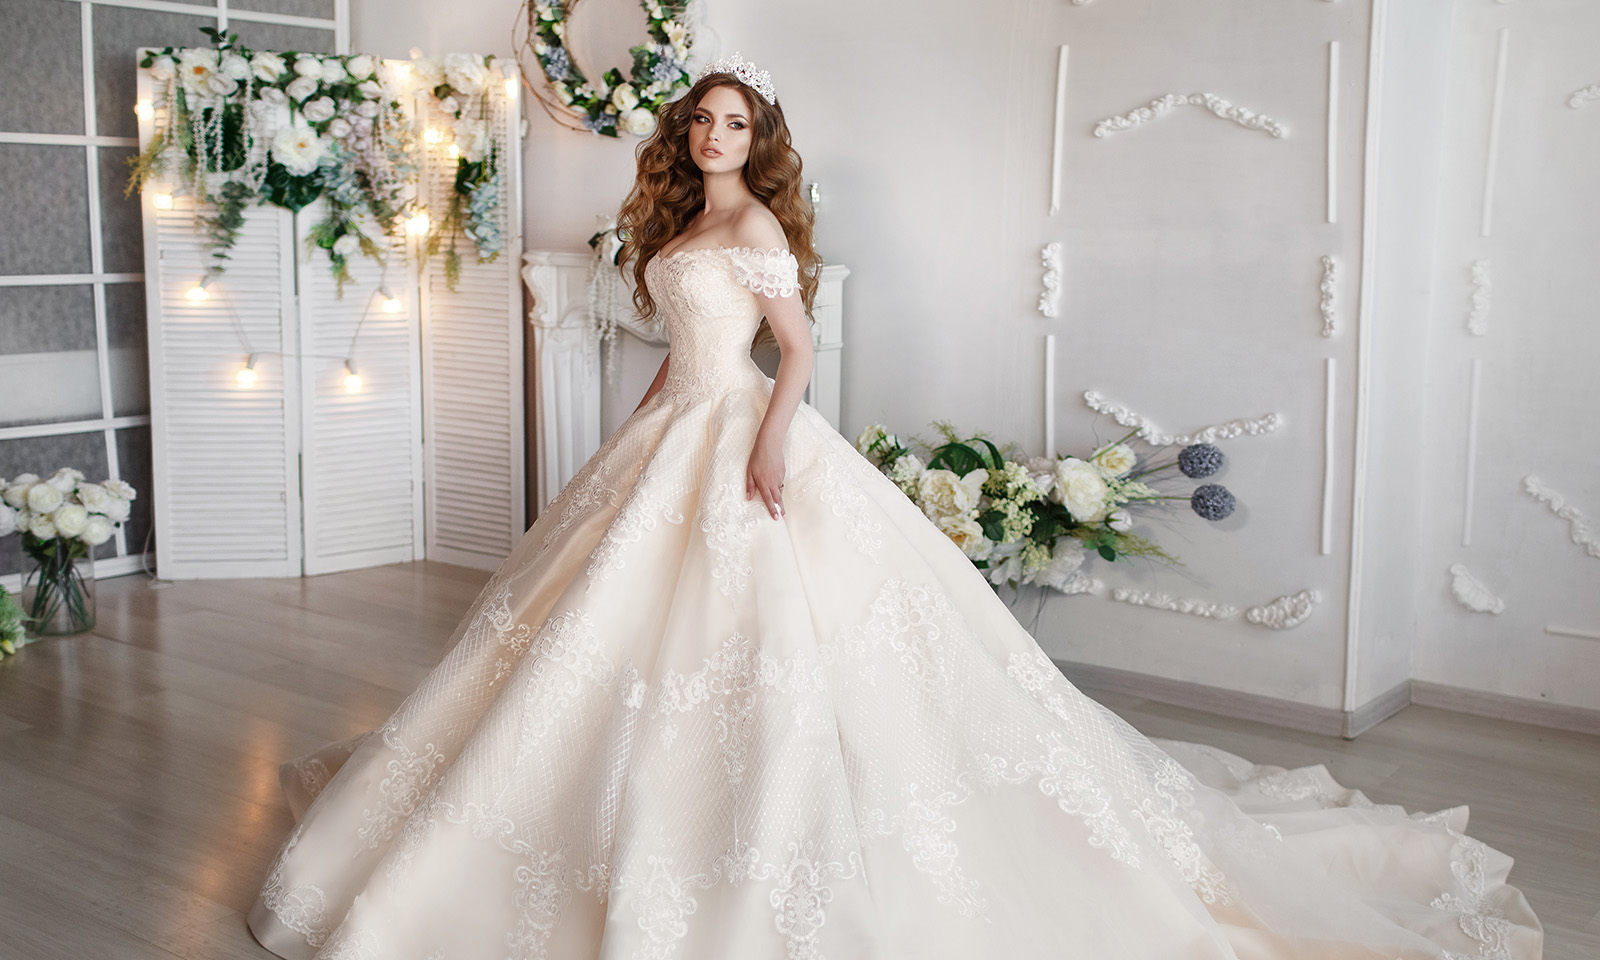 must-haves-for-a-perfect-wedding-day-bride-in-wedding-dress-on-wedding-day